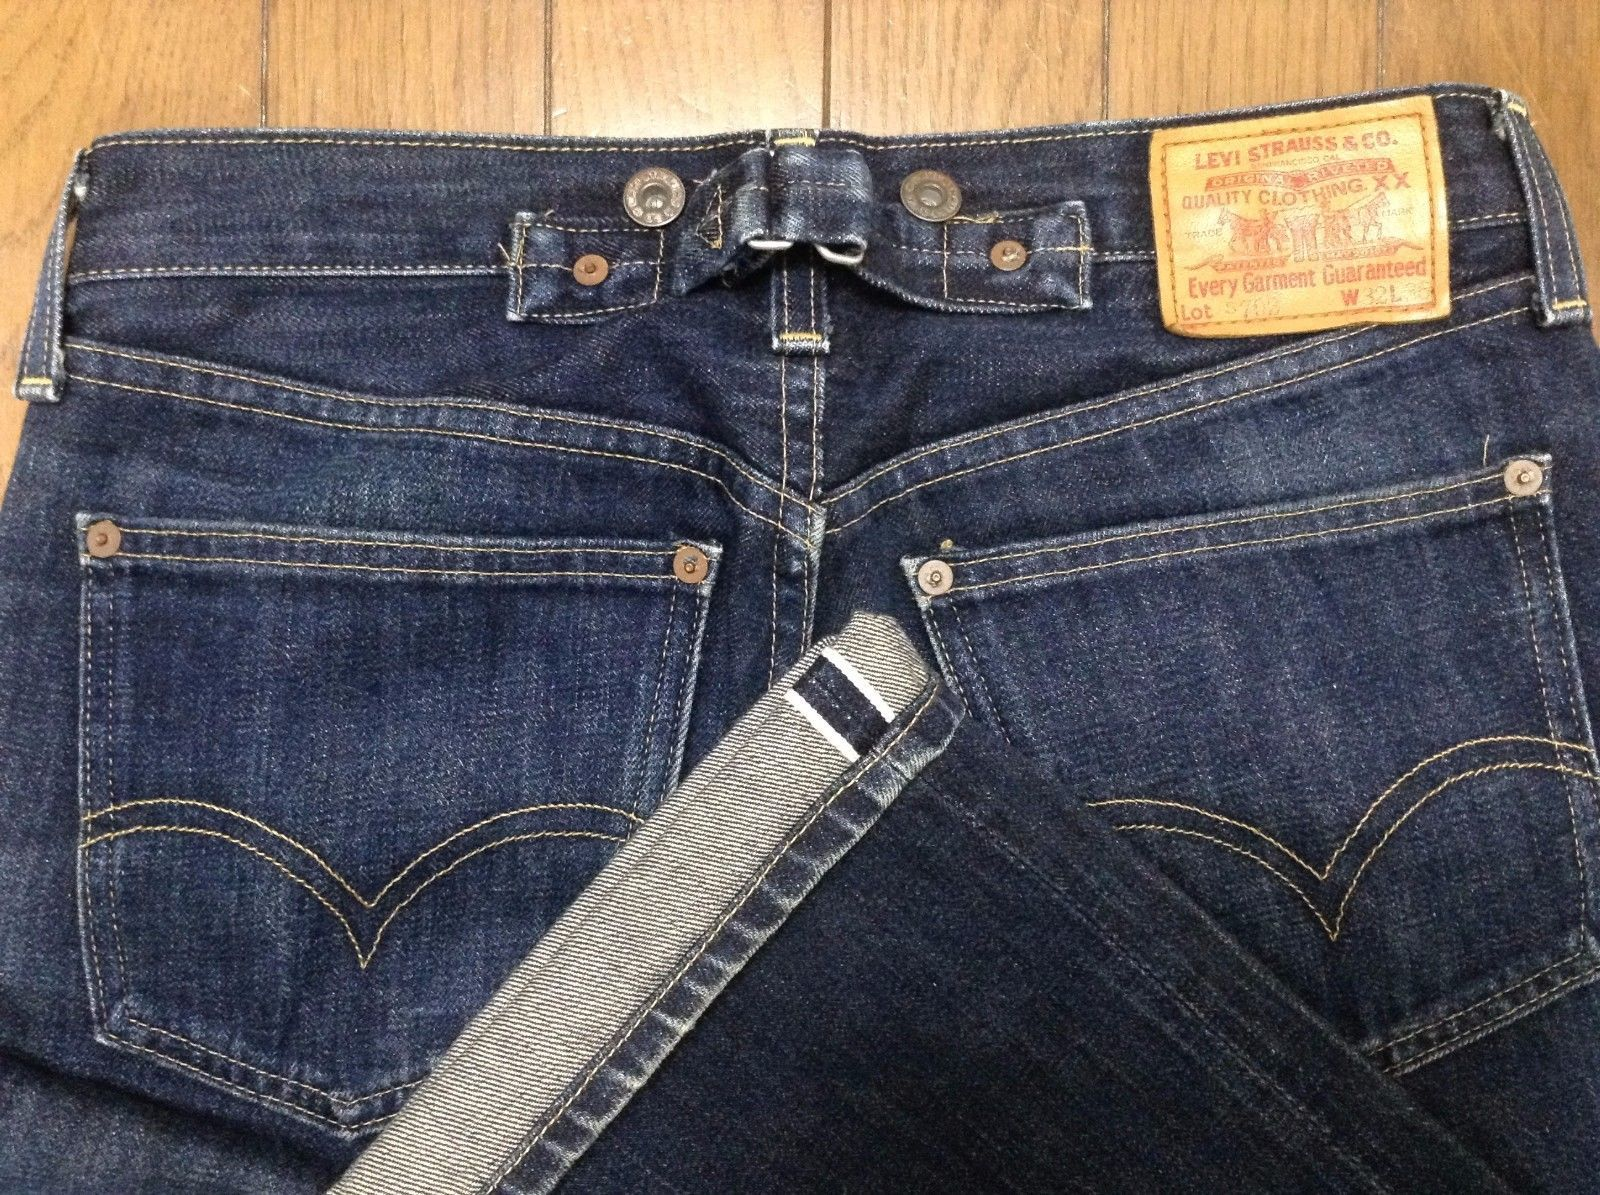 4d508b13d4a RARE 1920 Levis S702 501xx Big E Selvedge Buckle Cinch Back Japan Made LVC  31x27 | eBay